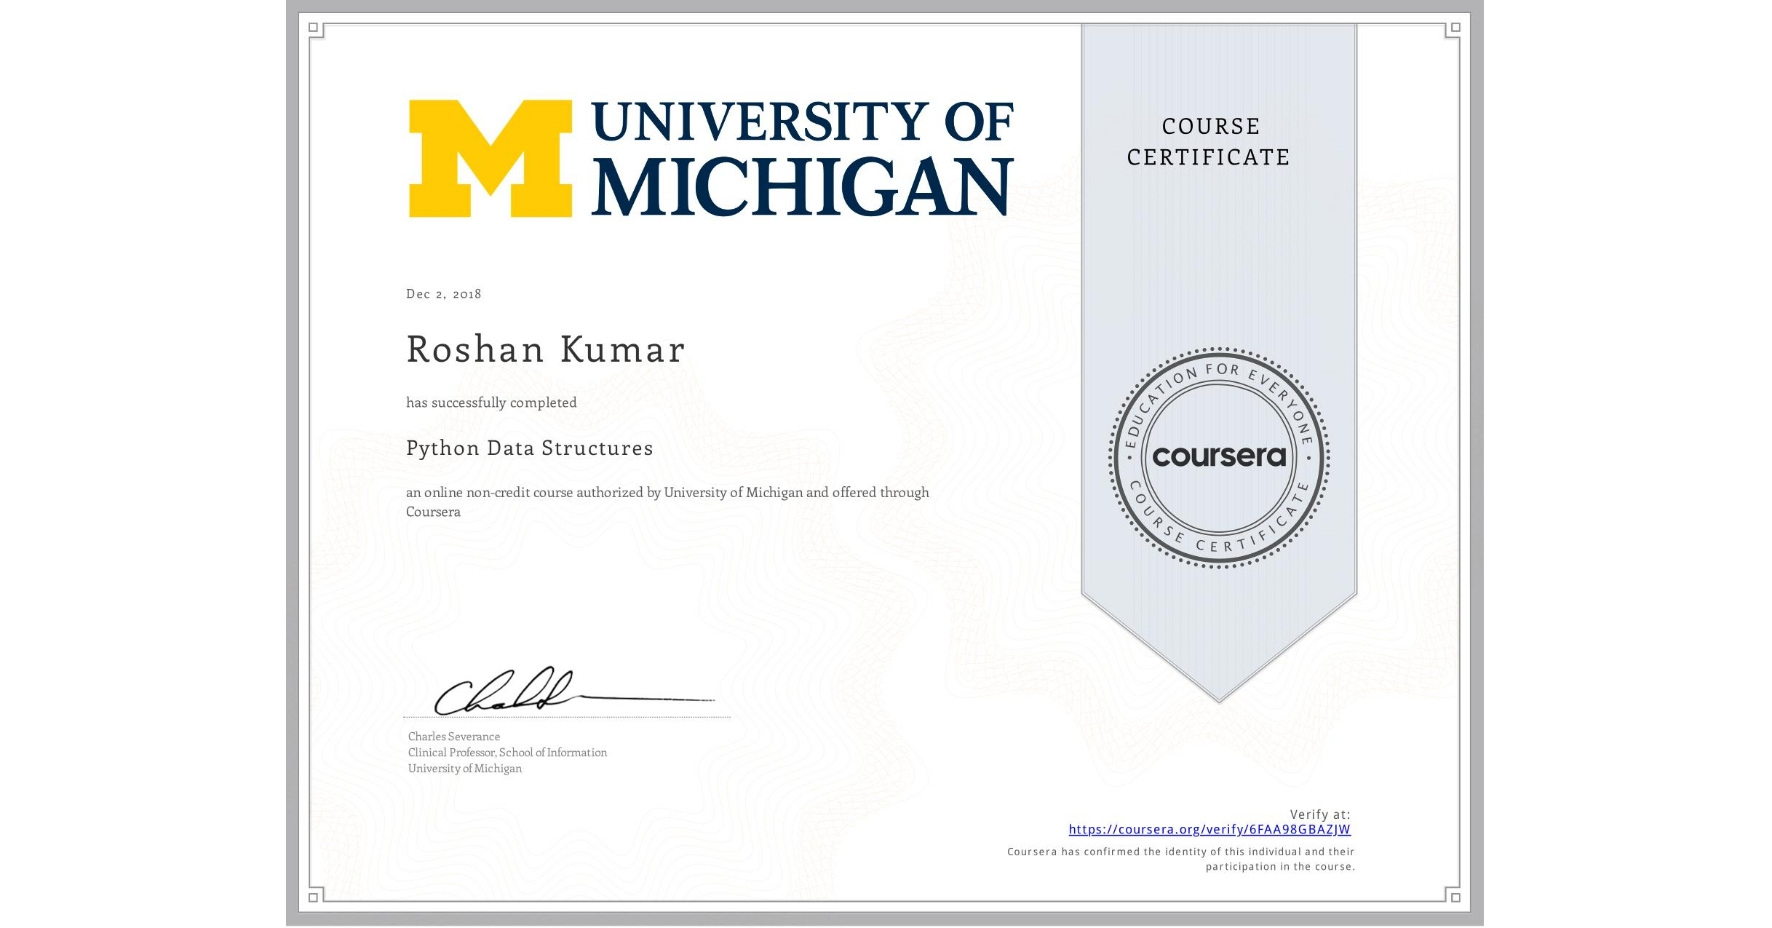 View certificate for Roshan Kumar, Python Data Structures, an online non-credit course authorized by University of Michigan and offered through Coursera